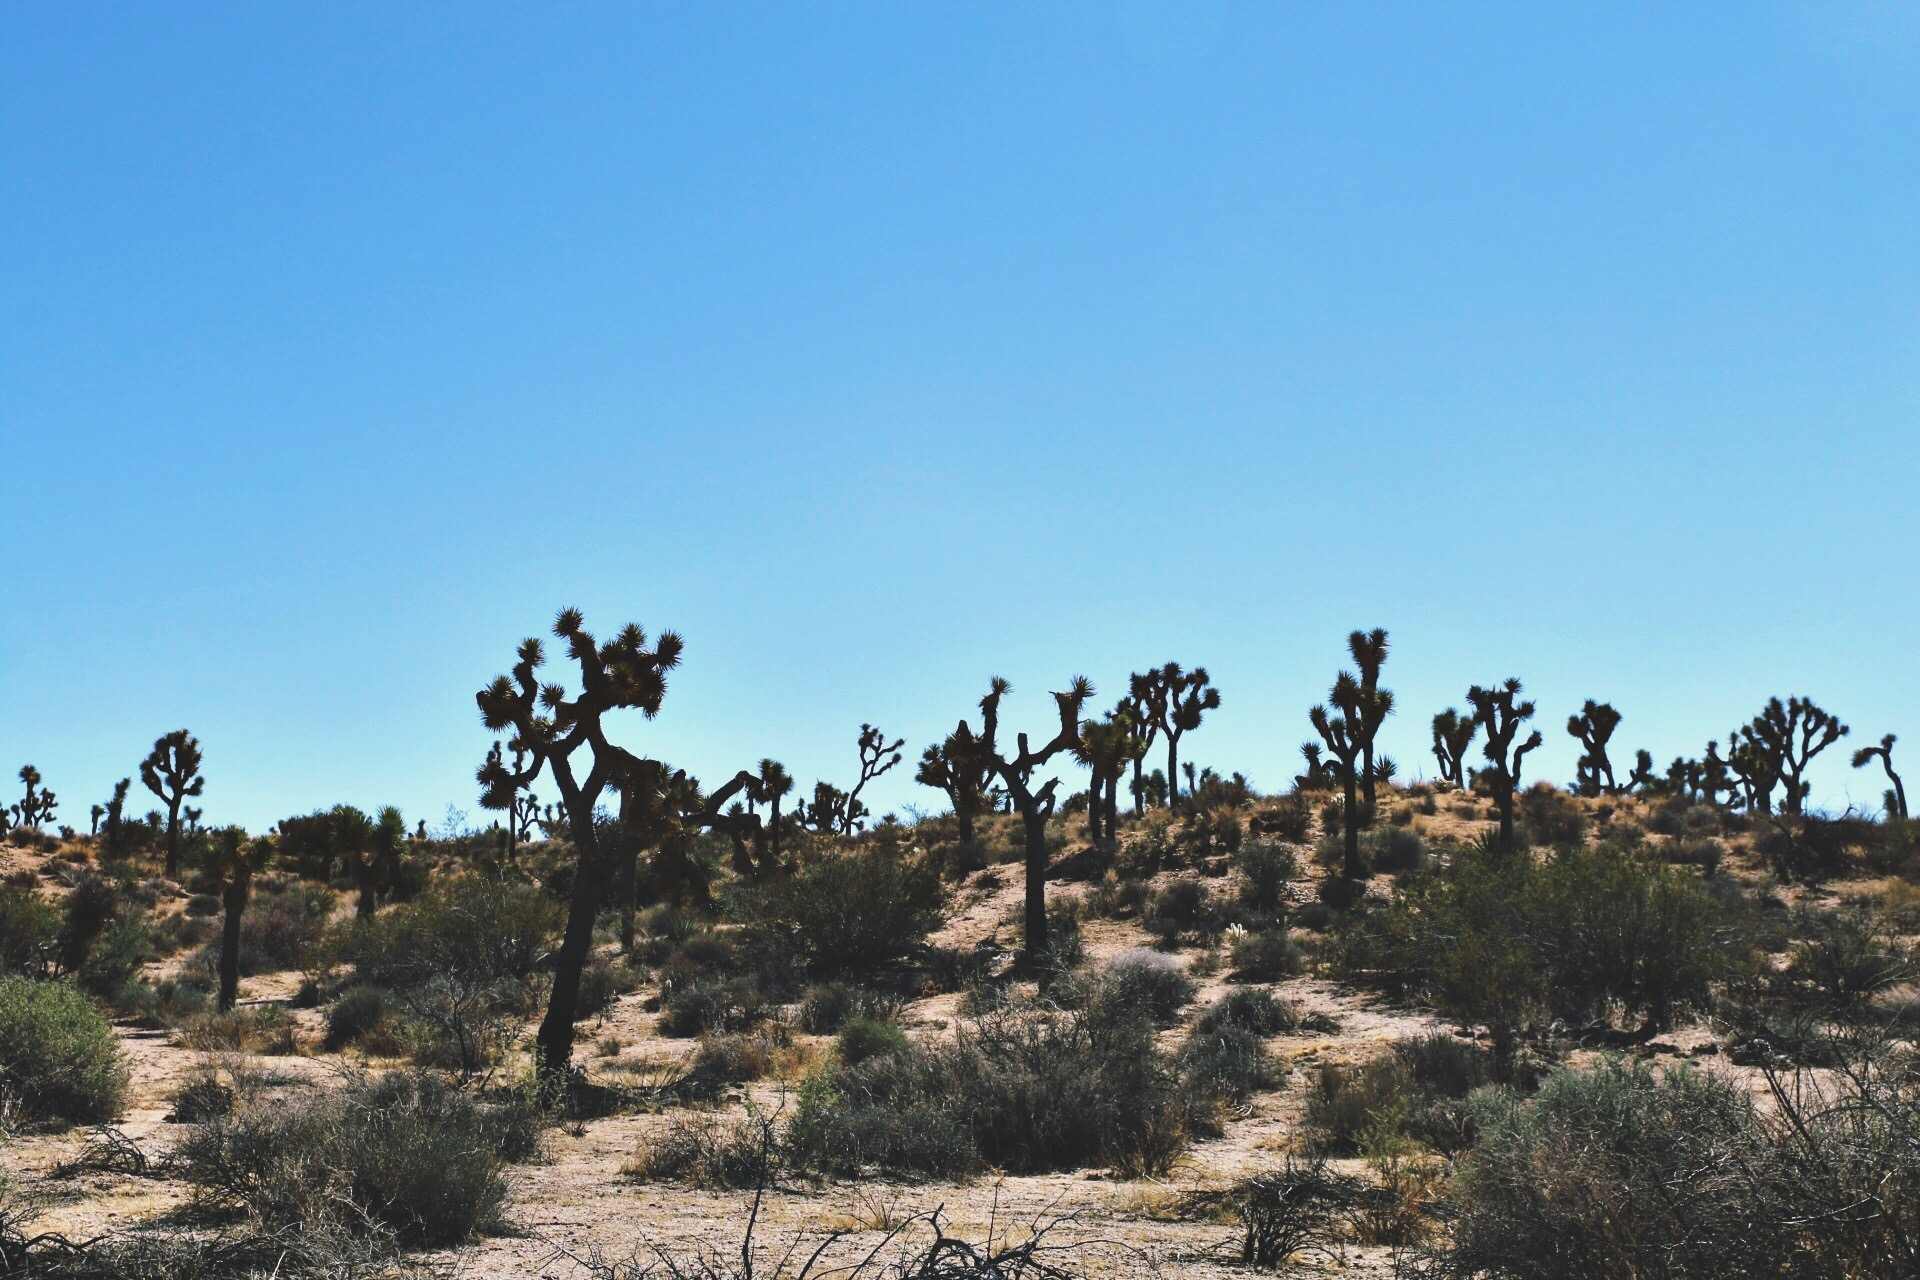 The Famous Trees of Joshua Tree National Park